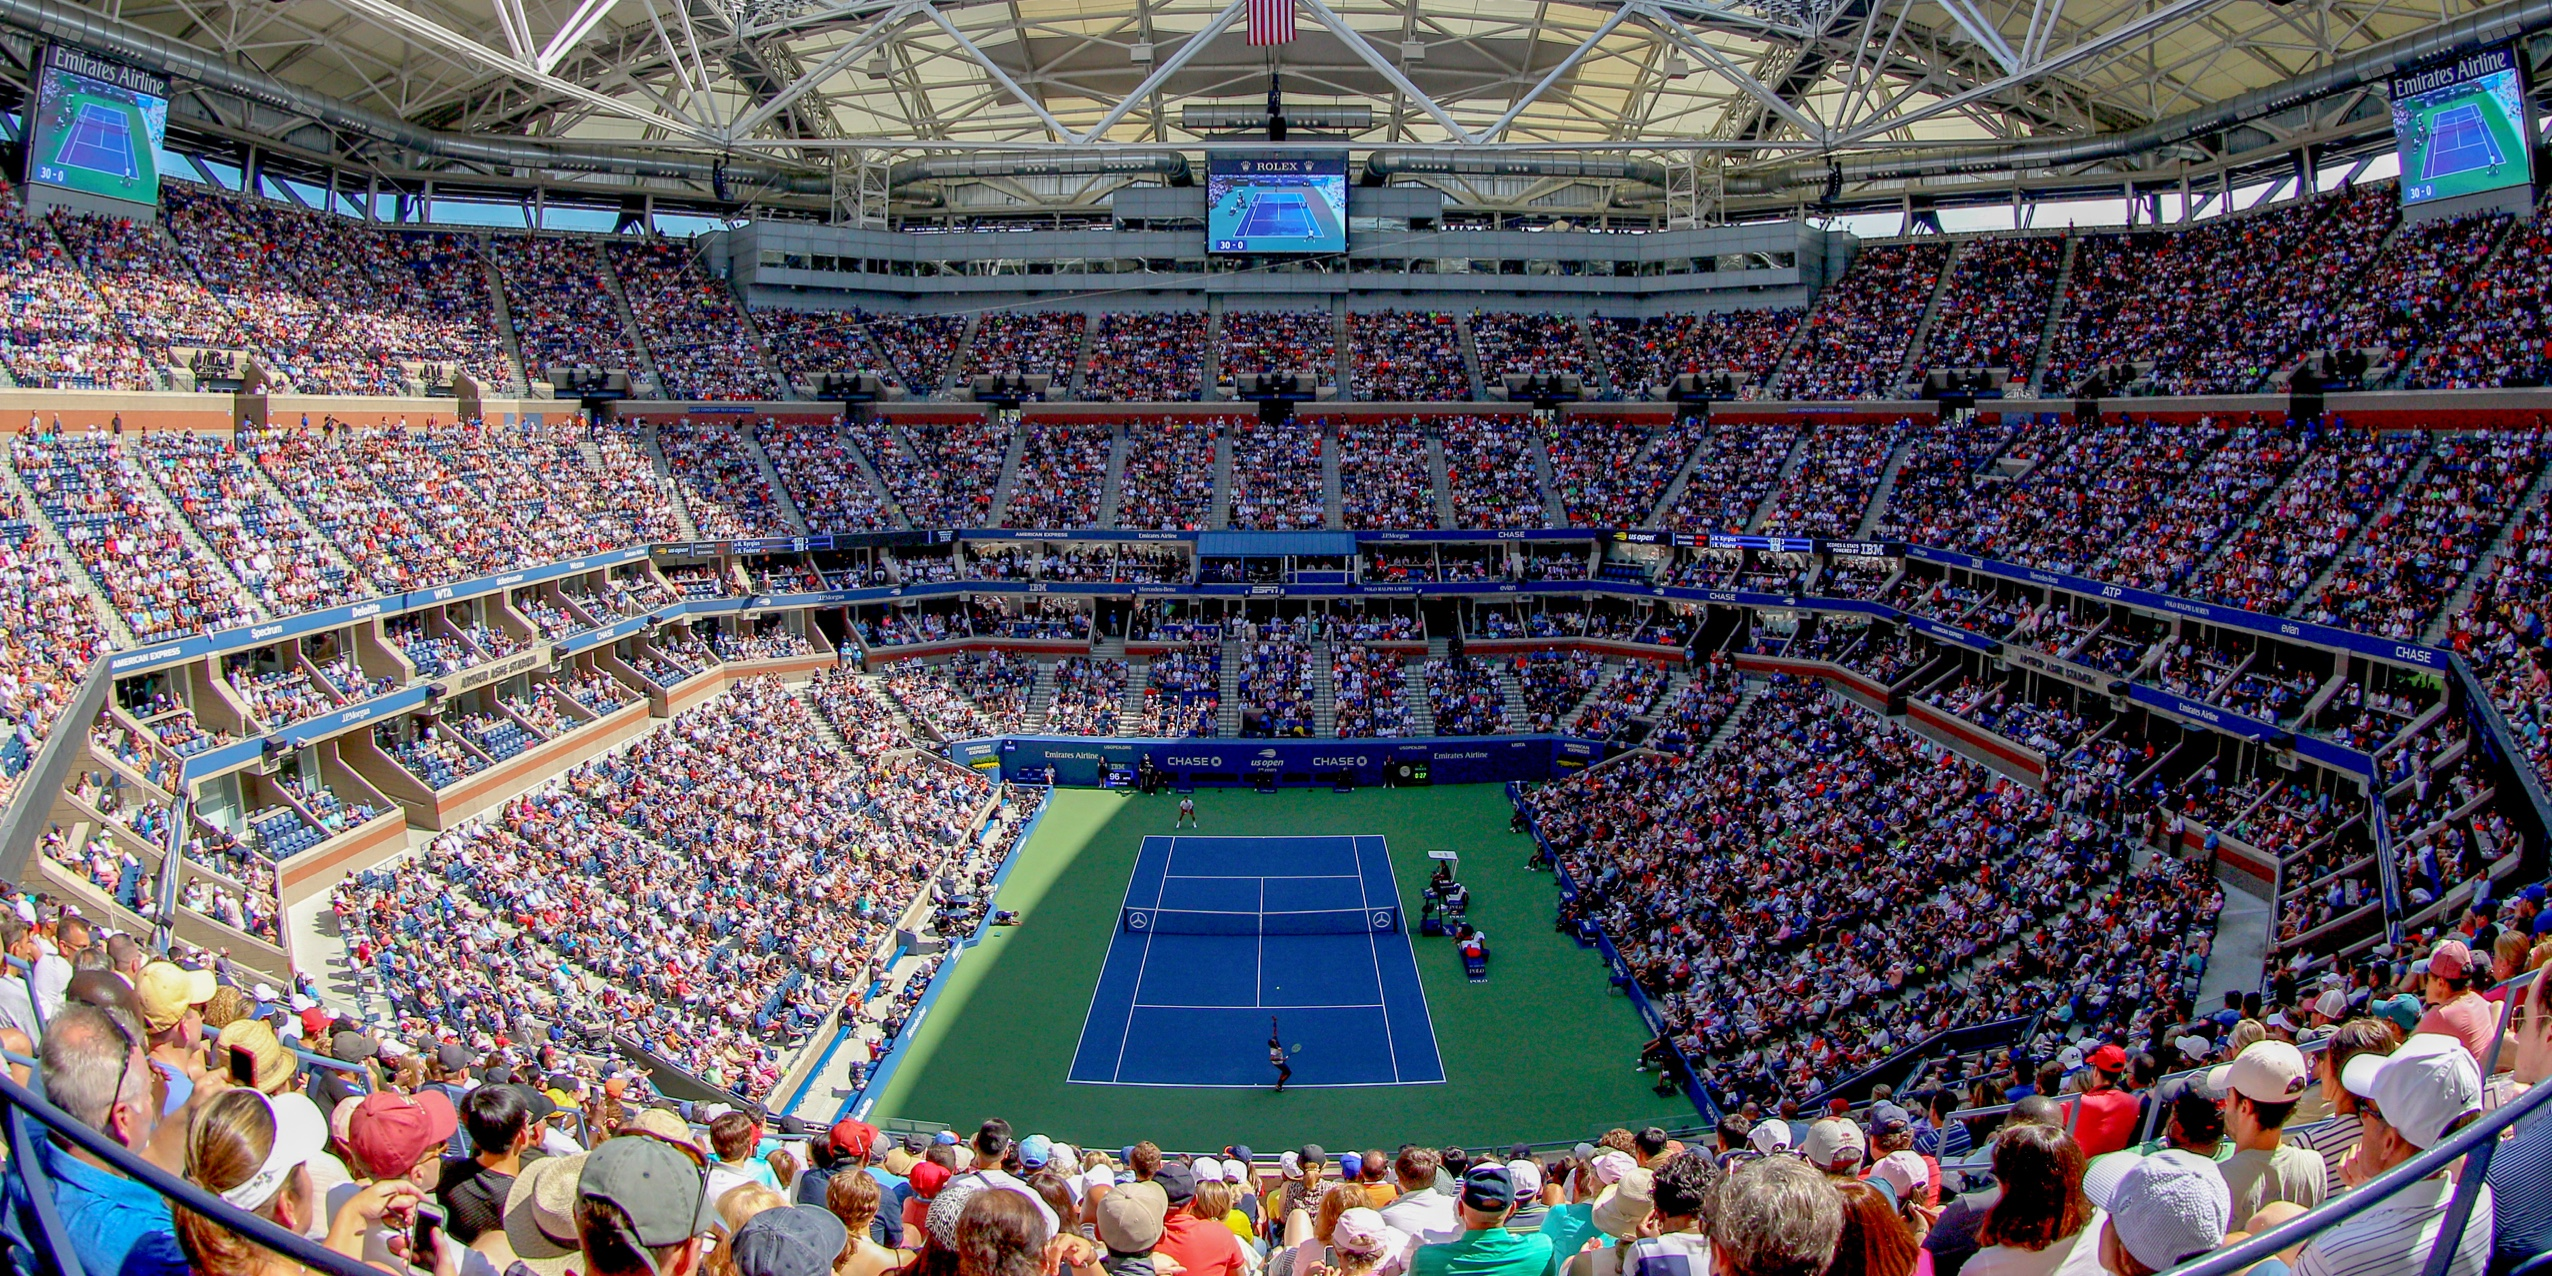 Panoramic photo of a crowded stadium watching a tenis match